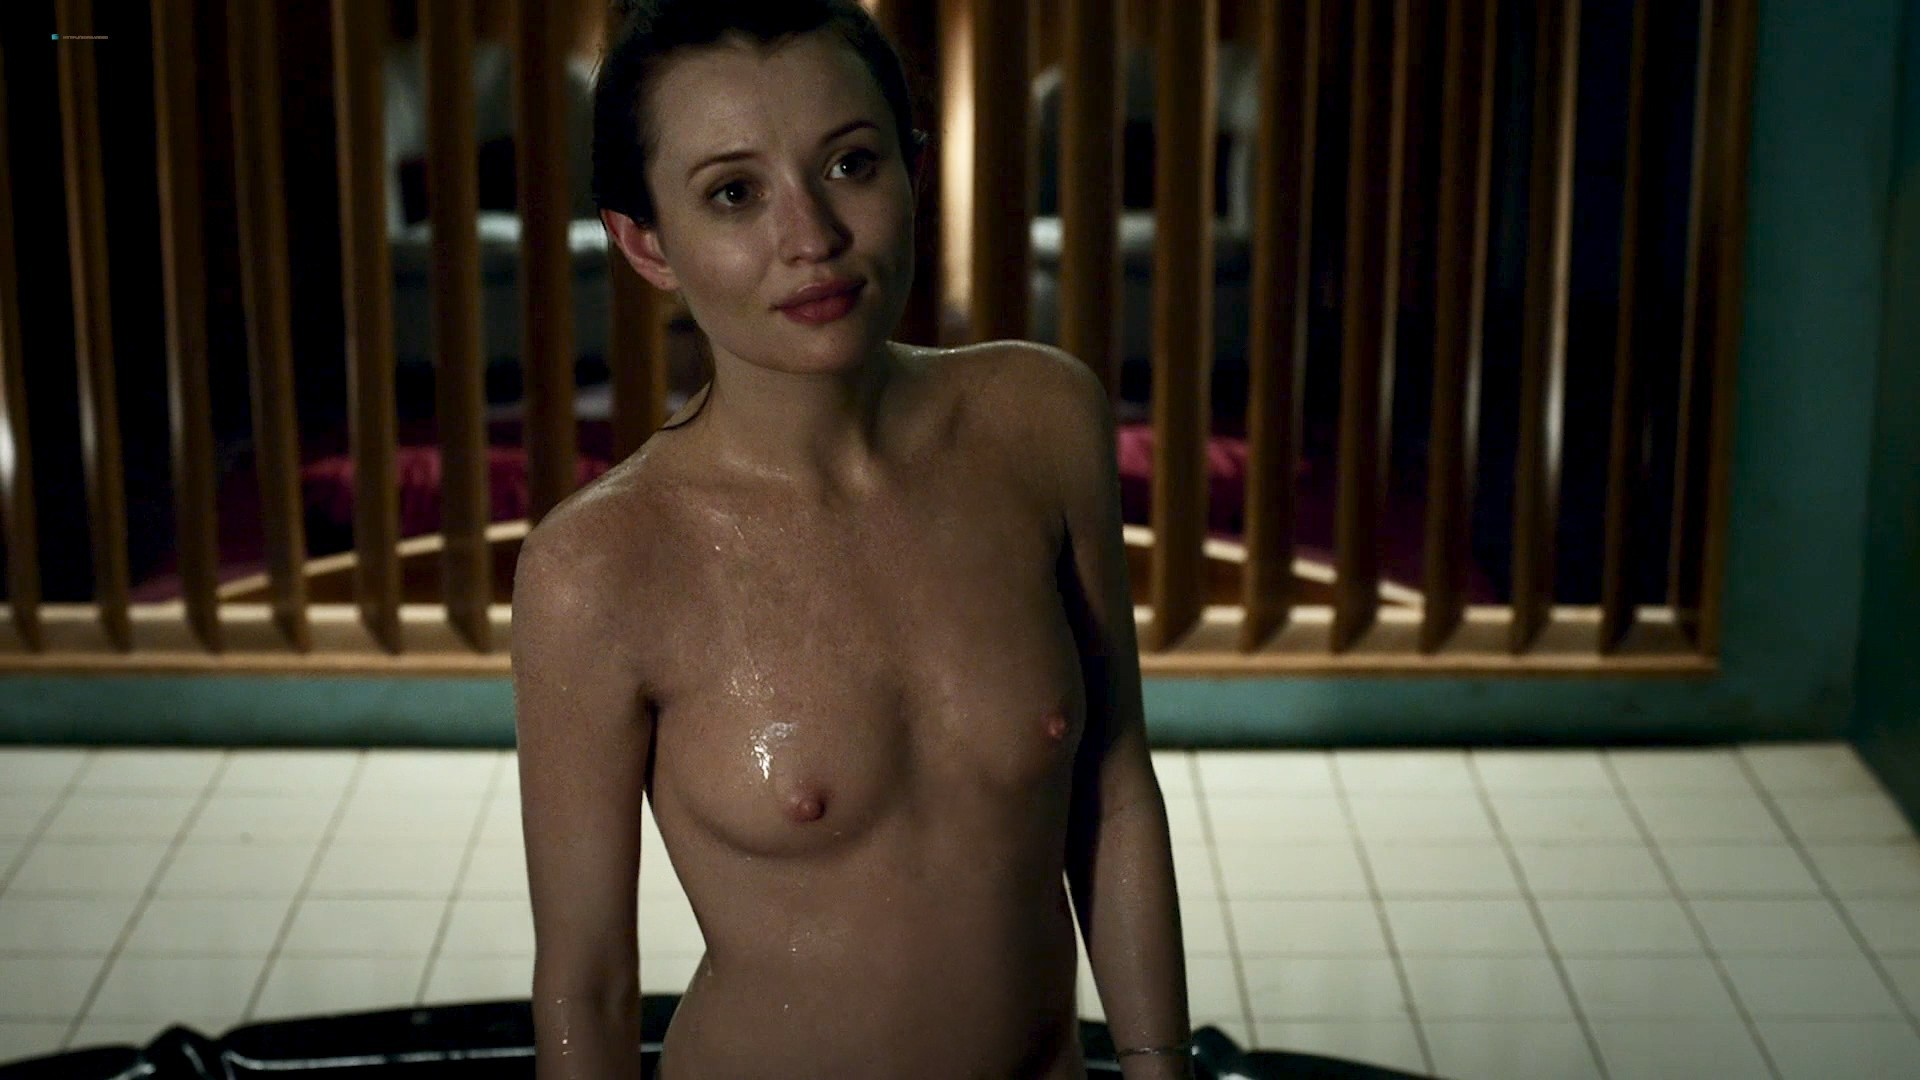 Emily browning nude porn pics